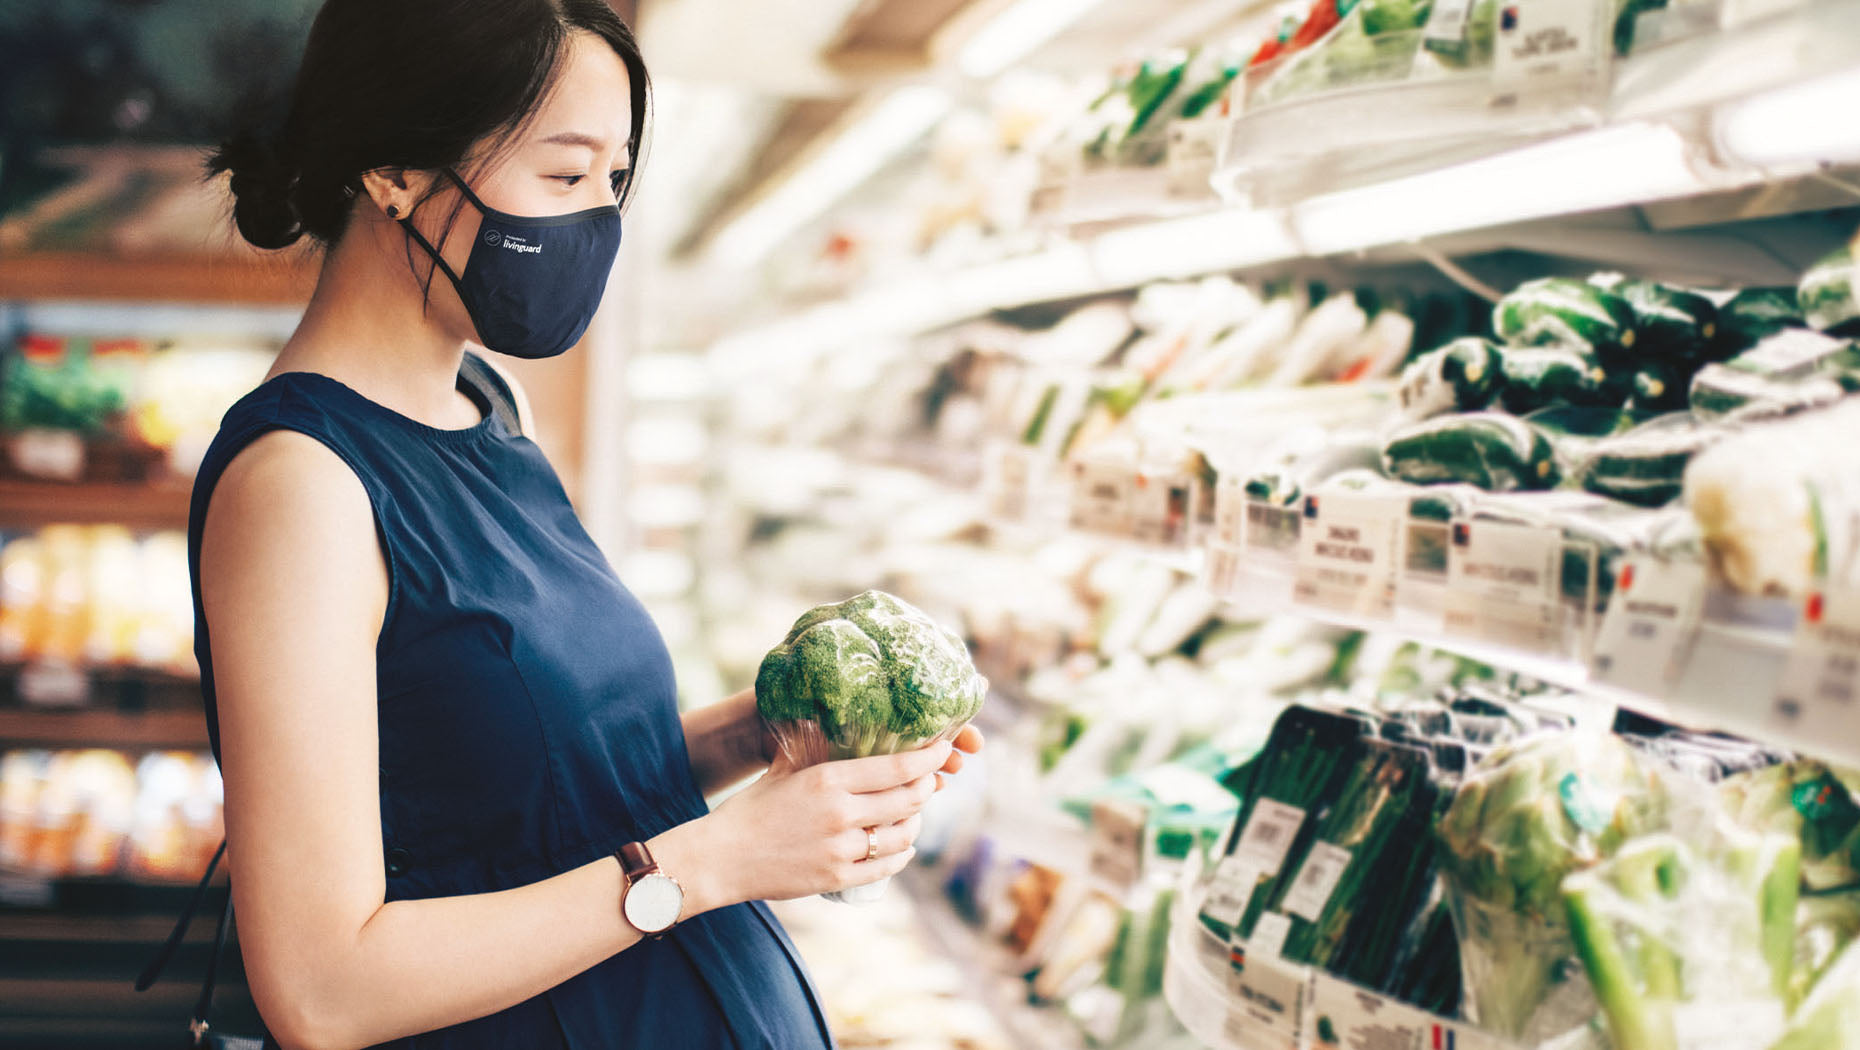 Livinguard mask worn by pregnant woman in supermarket Lateral